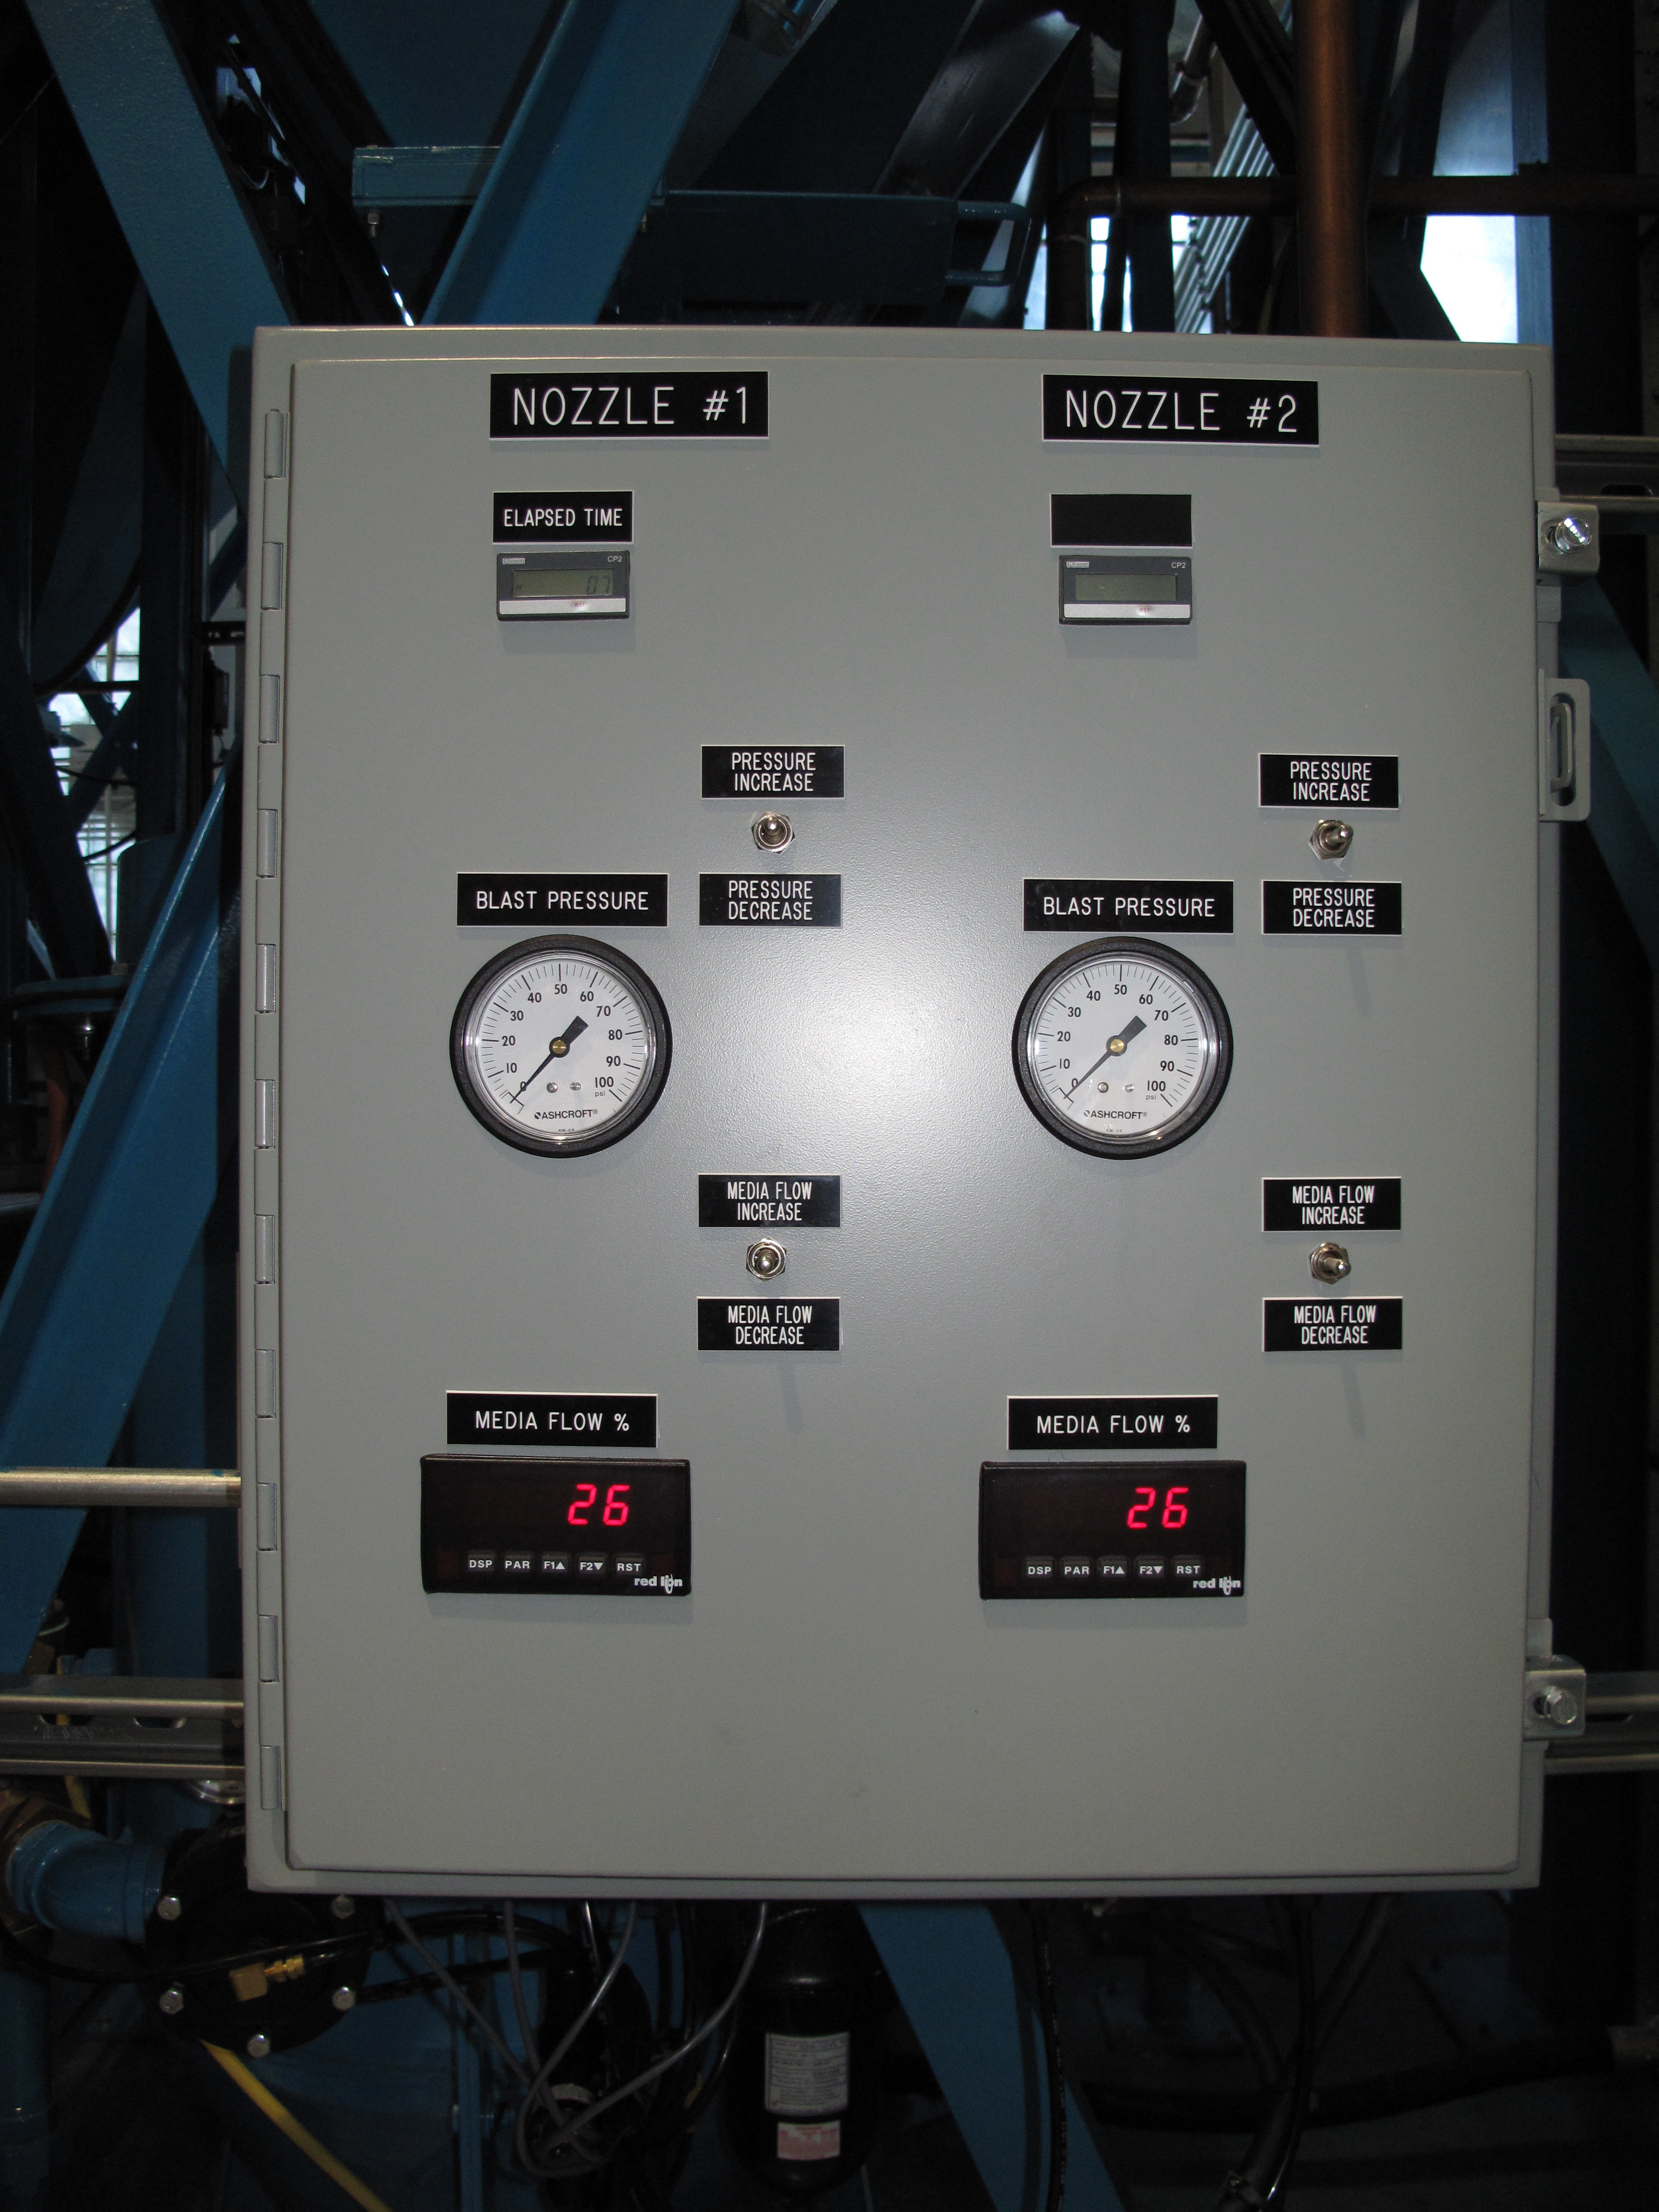 Stripping Process Control Panel; Time, Pressure, Media Flow